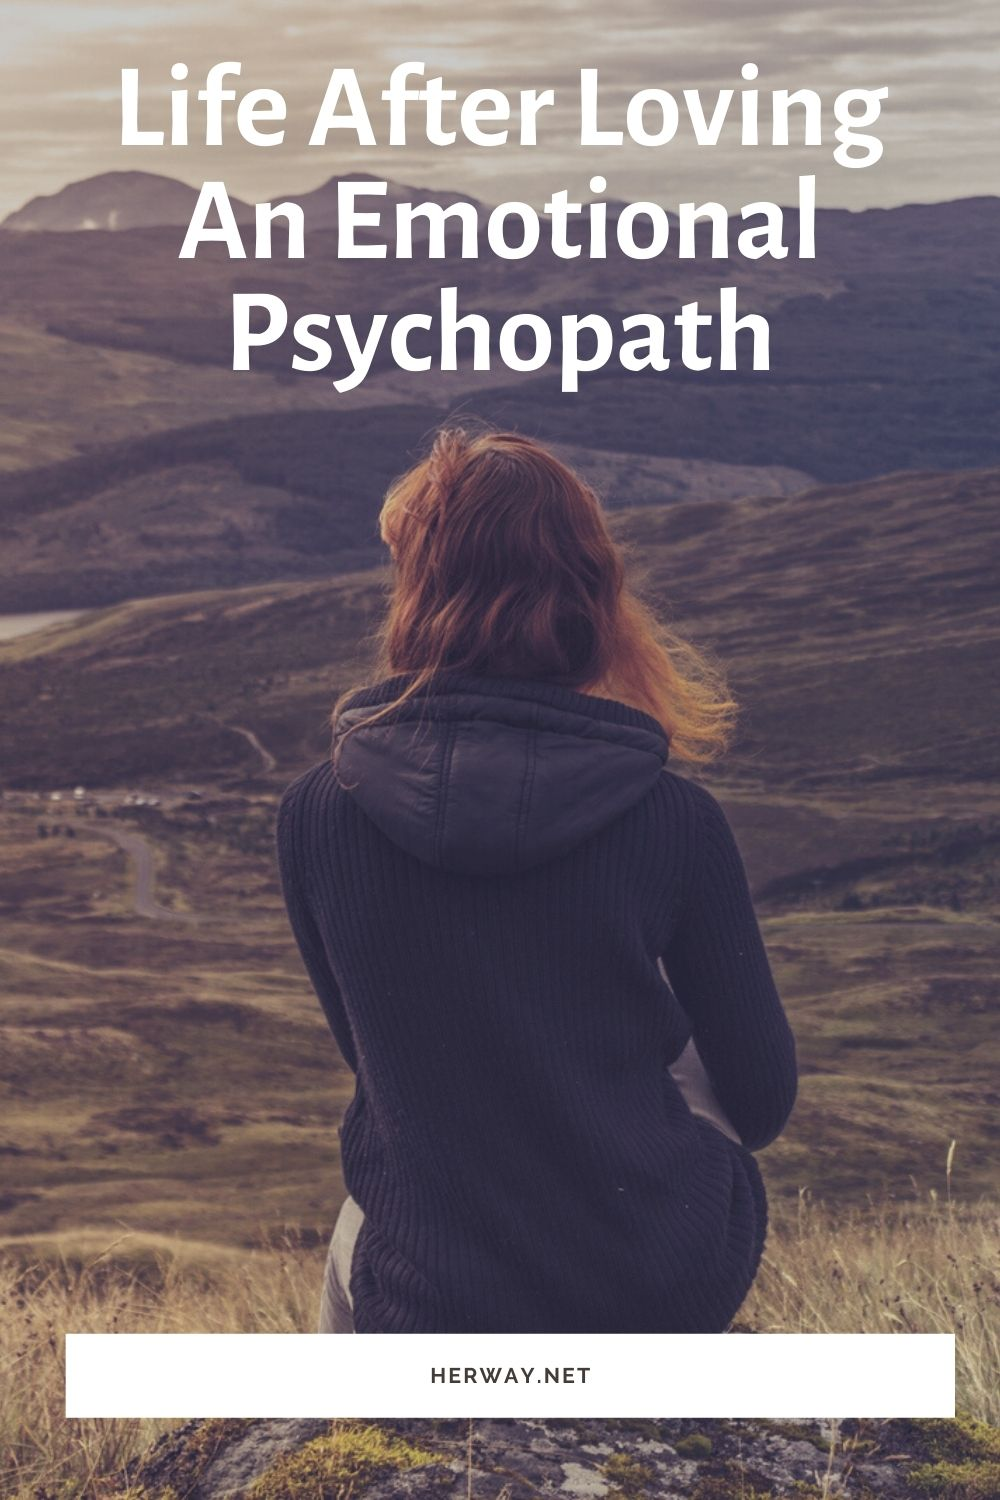 Life After Loving An Emotional Psychopath